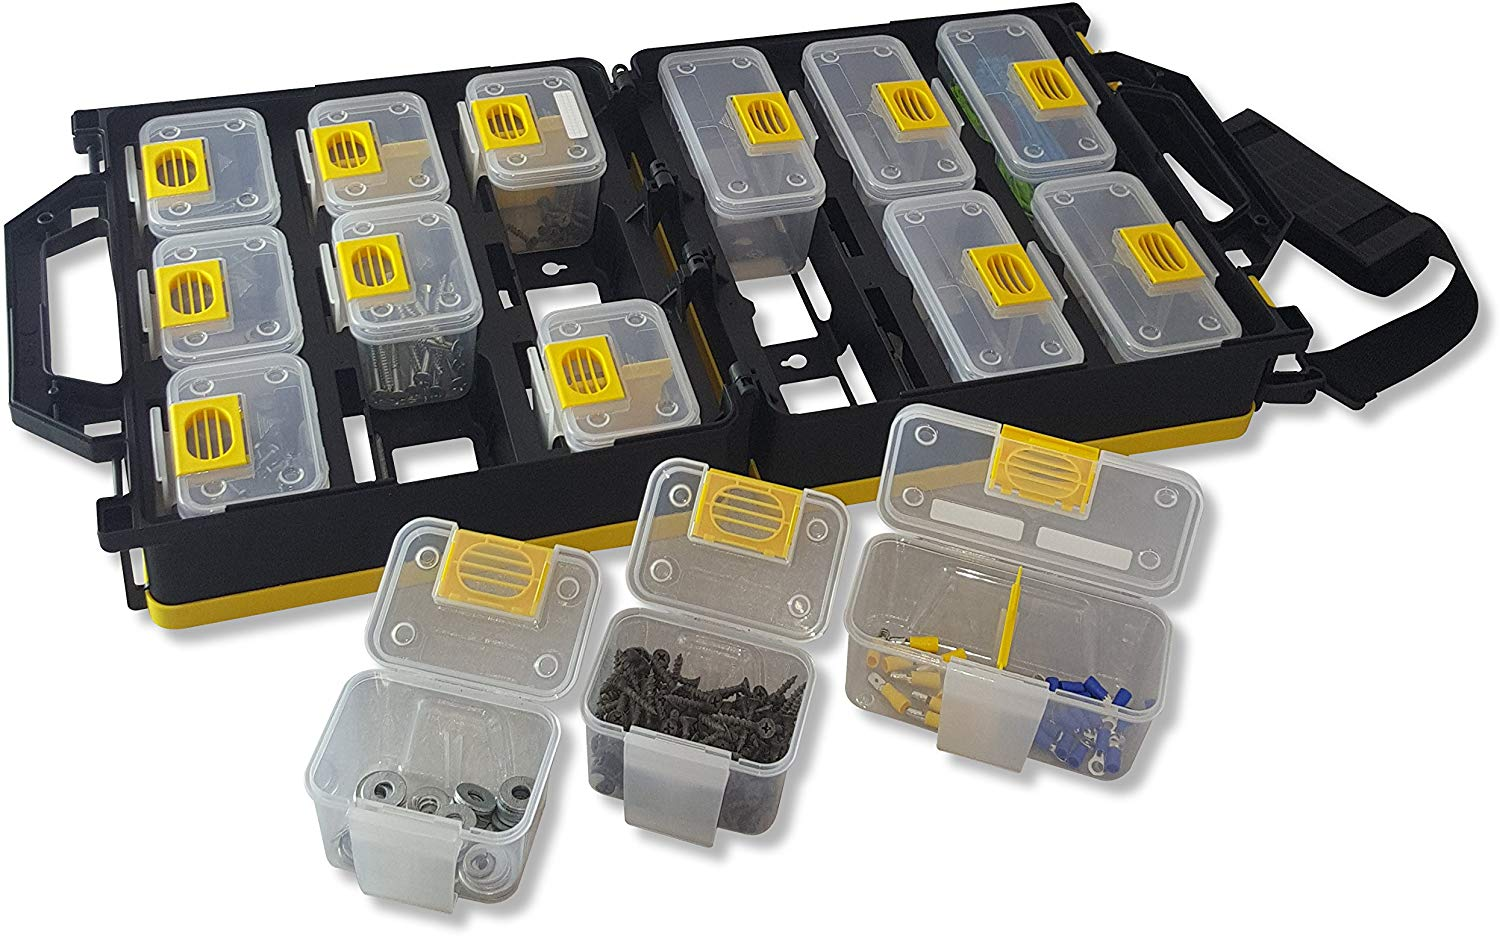 WorkVanEquipment Mobile Hardware Case Tackle Box - US Patented